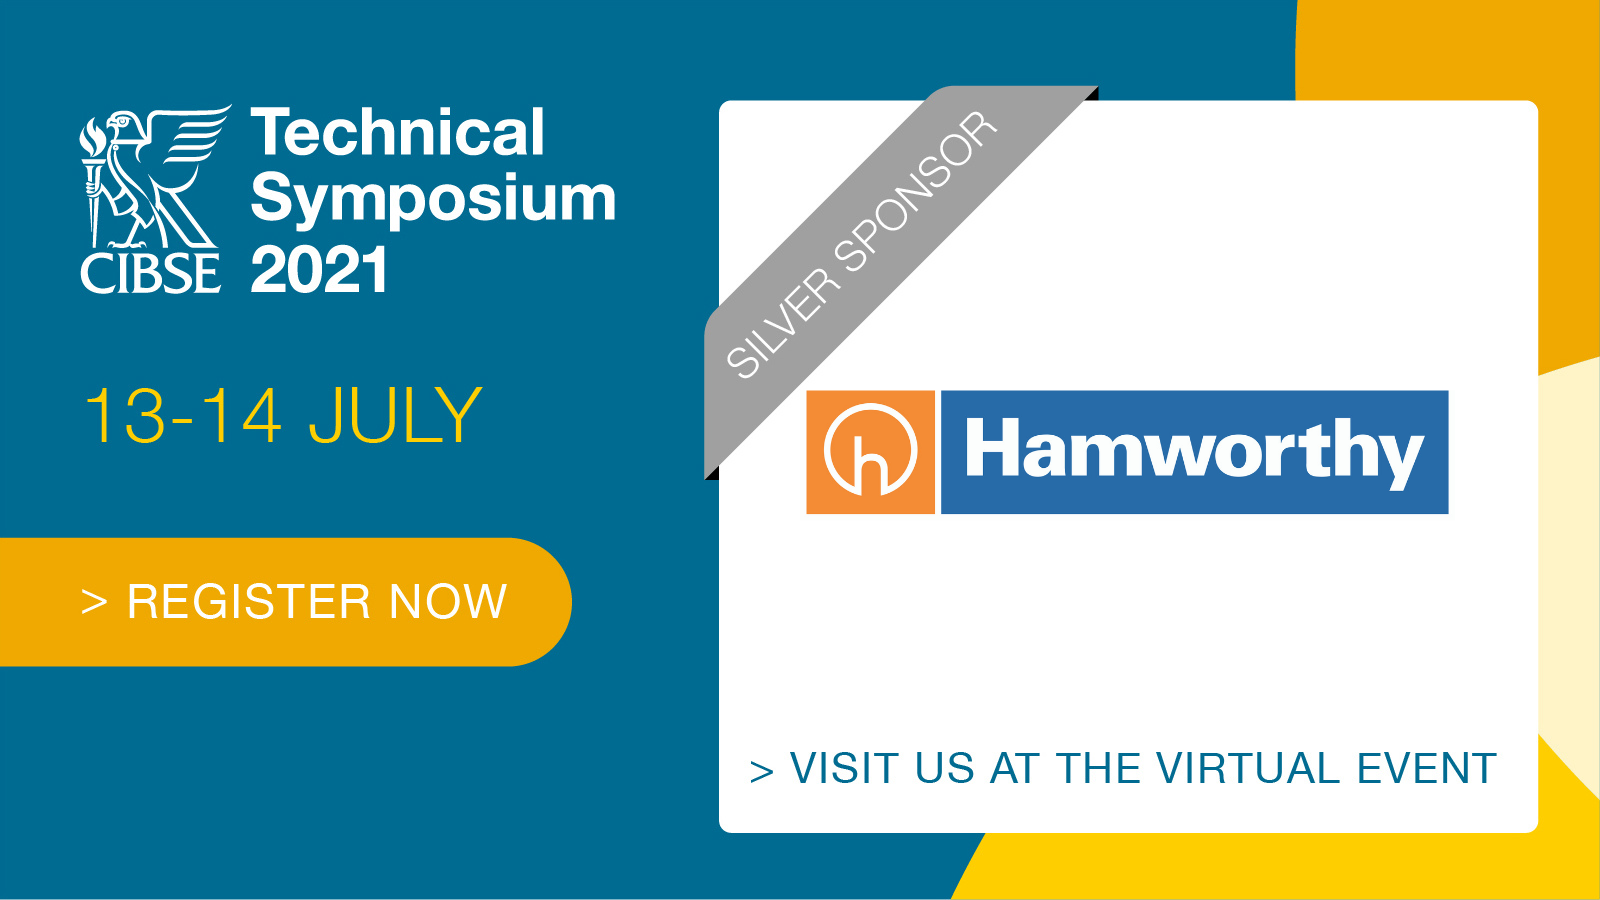 Hamworthy is Silver Sponsor of this year's Technical Symposium